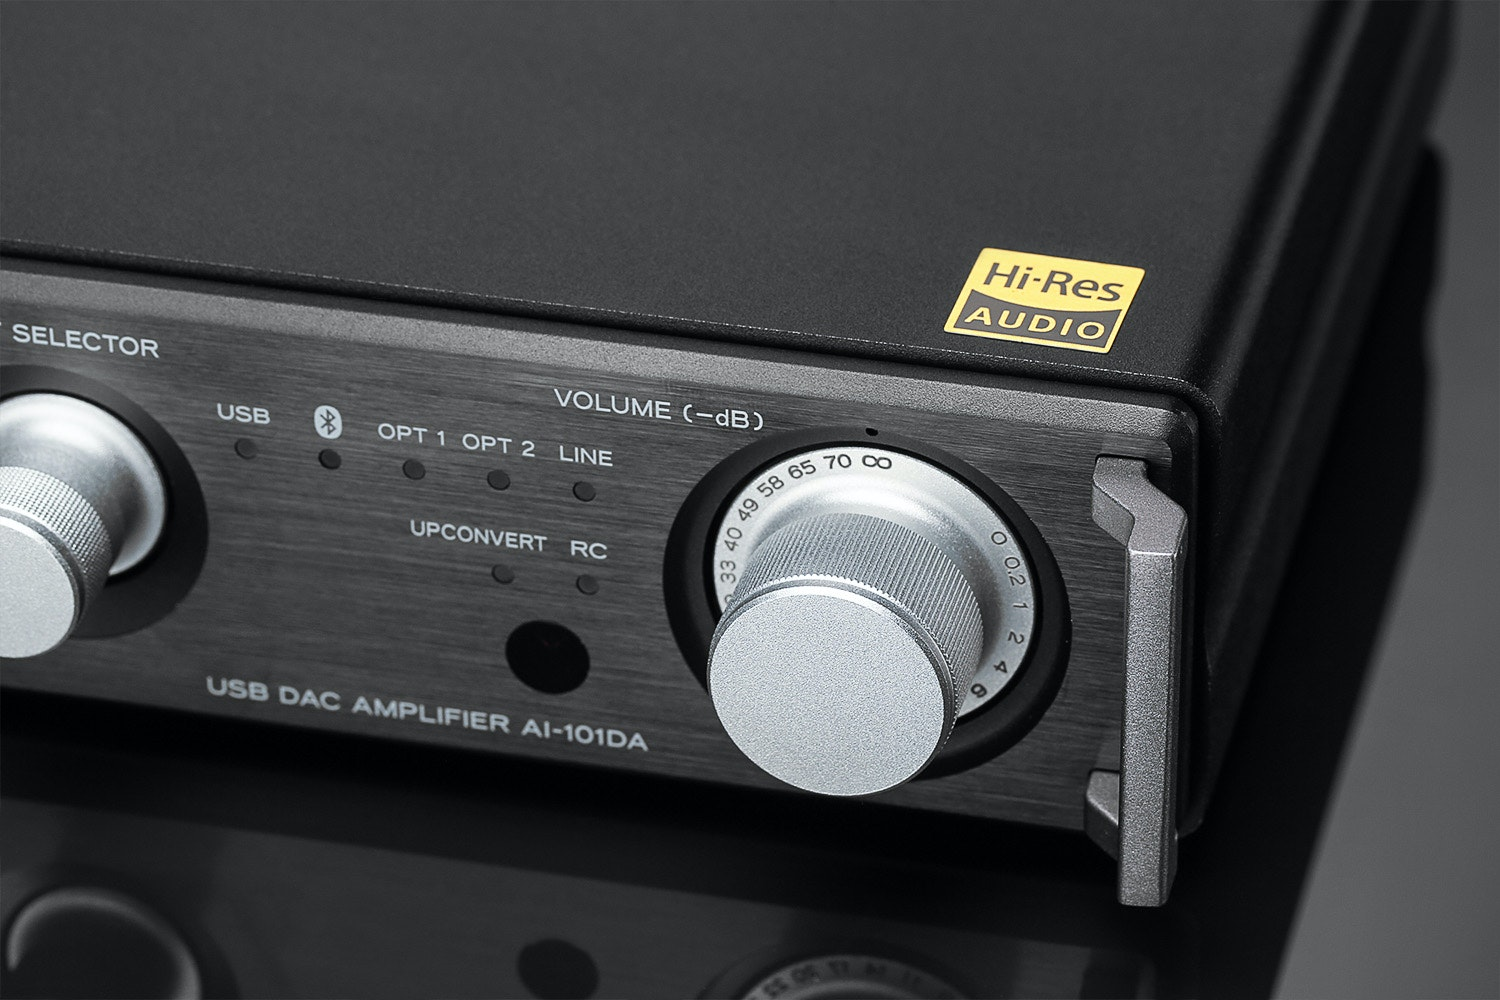 TEAC AI-101DA Integrated Amplifier with USB DAC